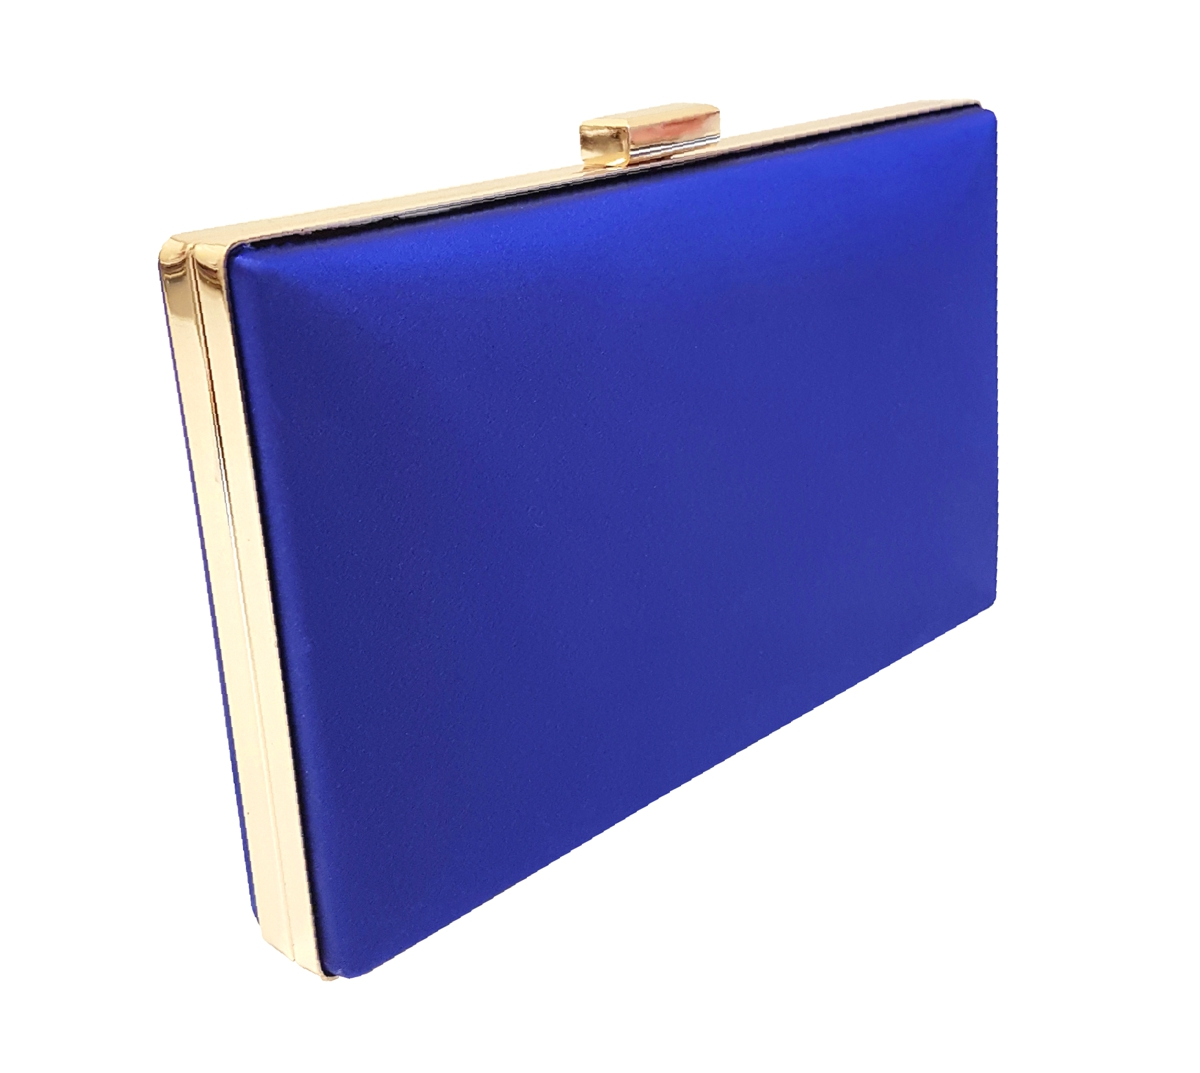 Royal blue silk box clutch bag with gold frame